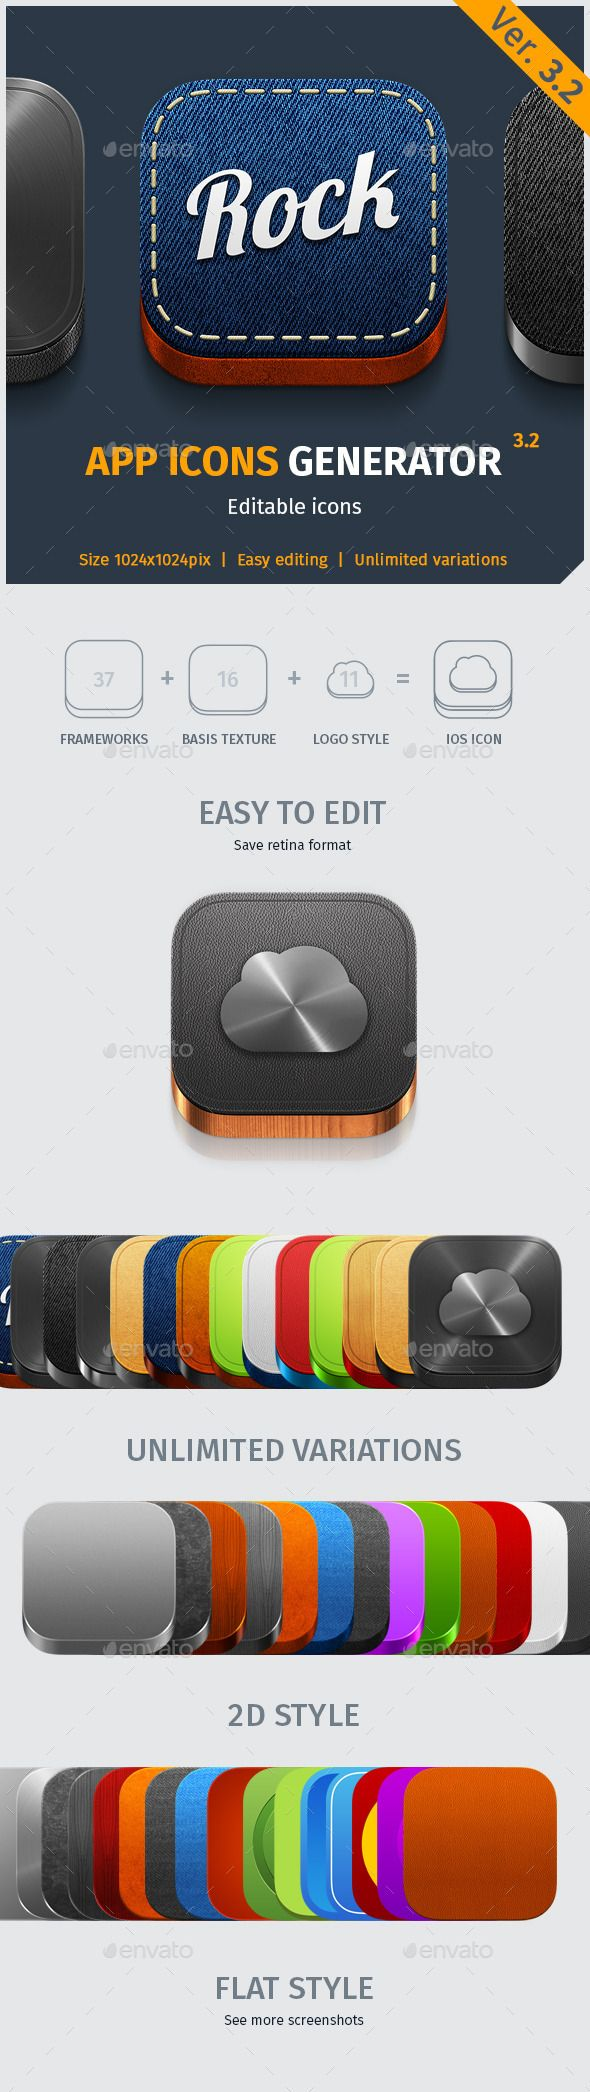 Generator icons for IOS7 and Android applications. #App #Icon #Generator V.3.2 - Software Icons